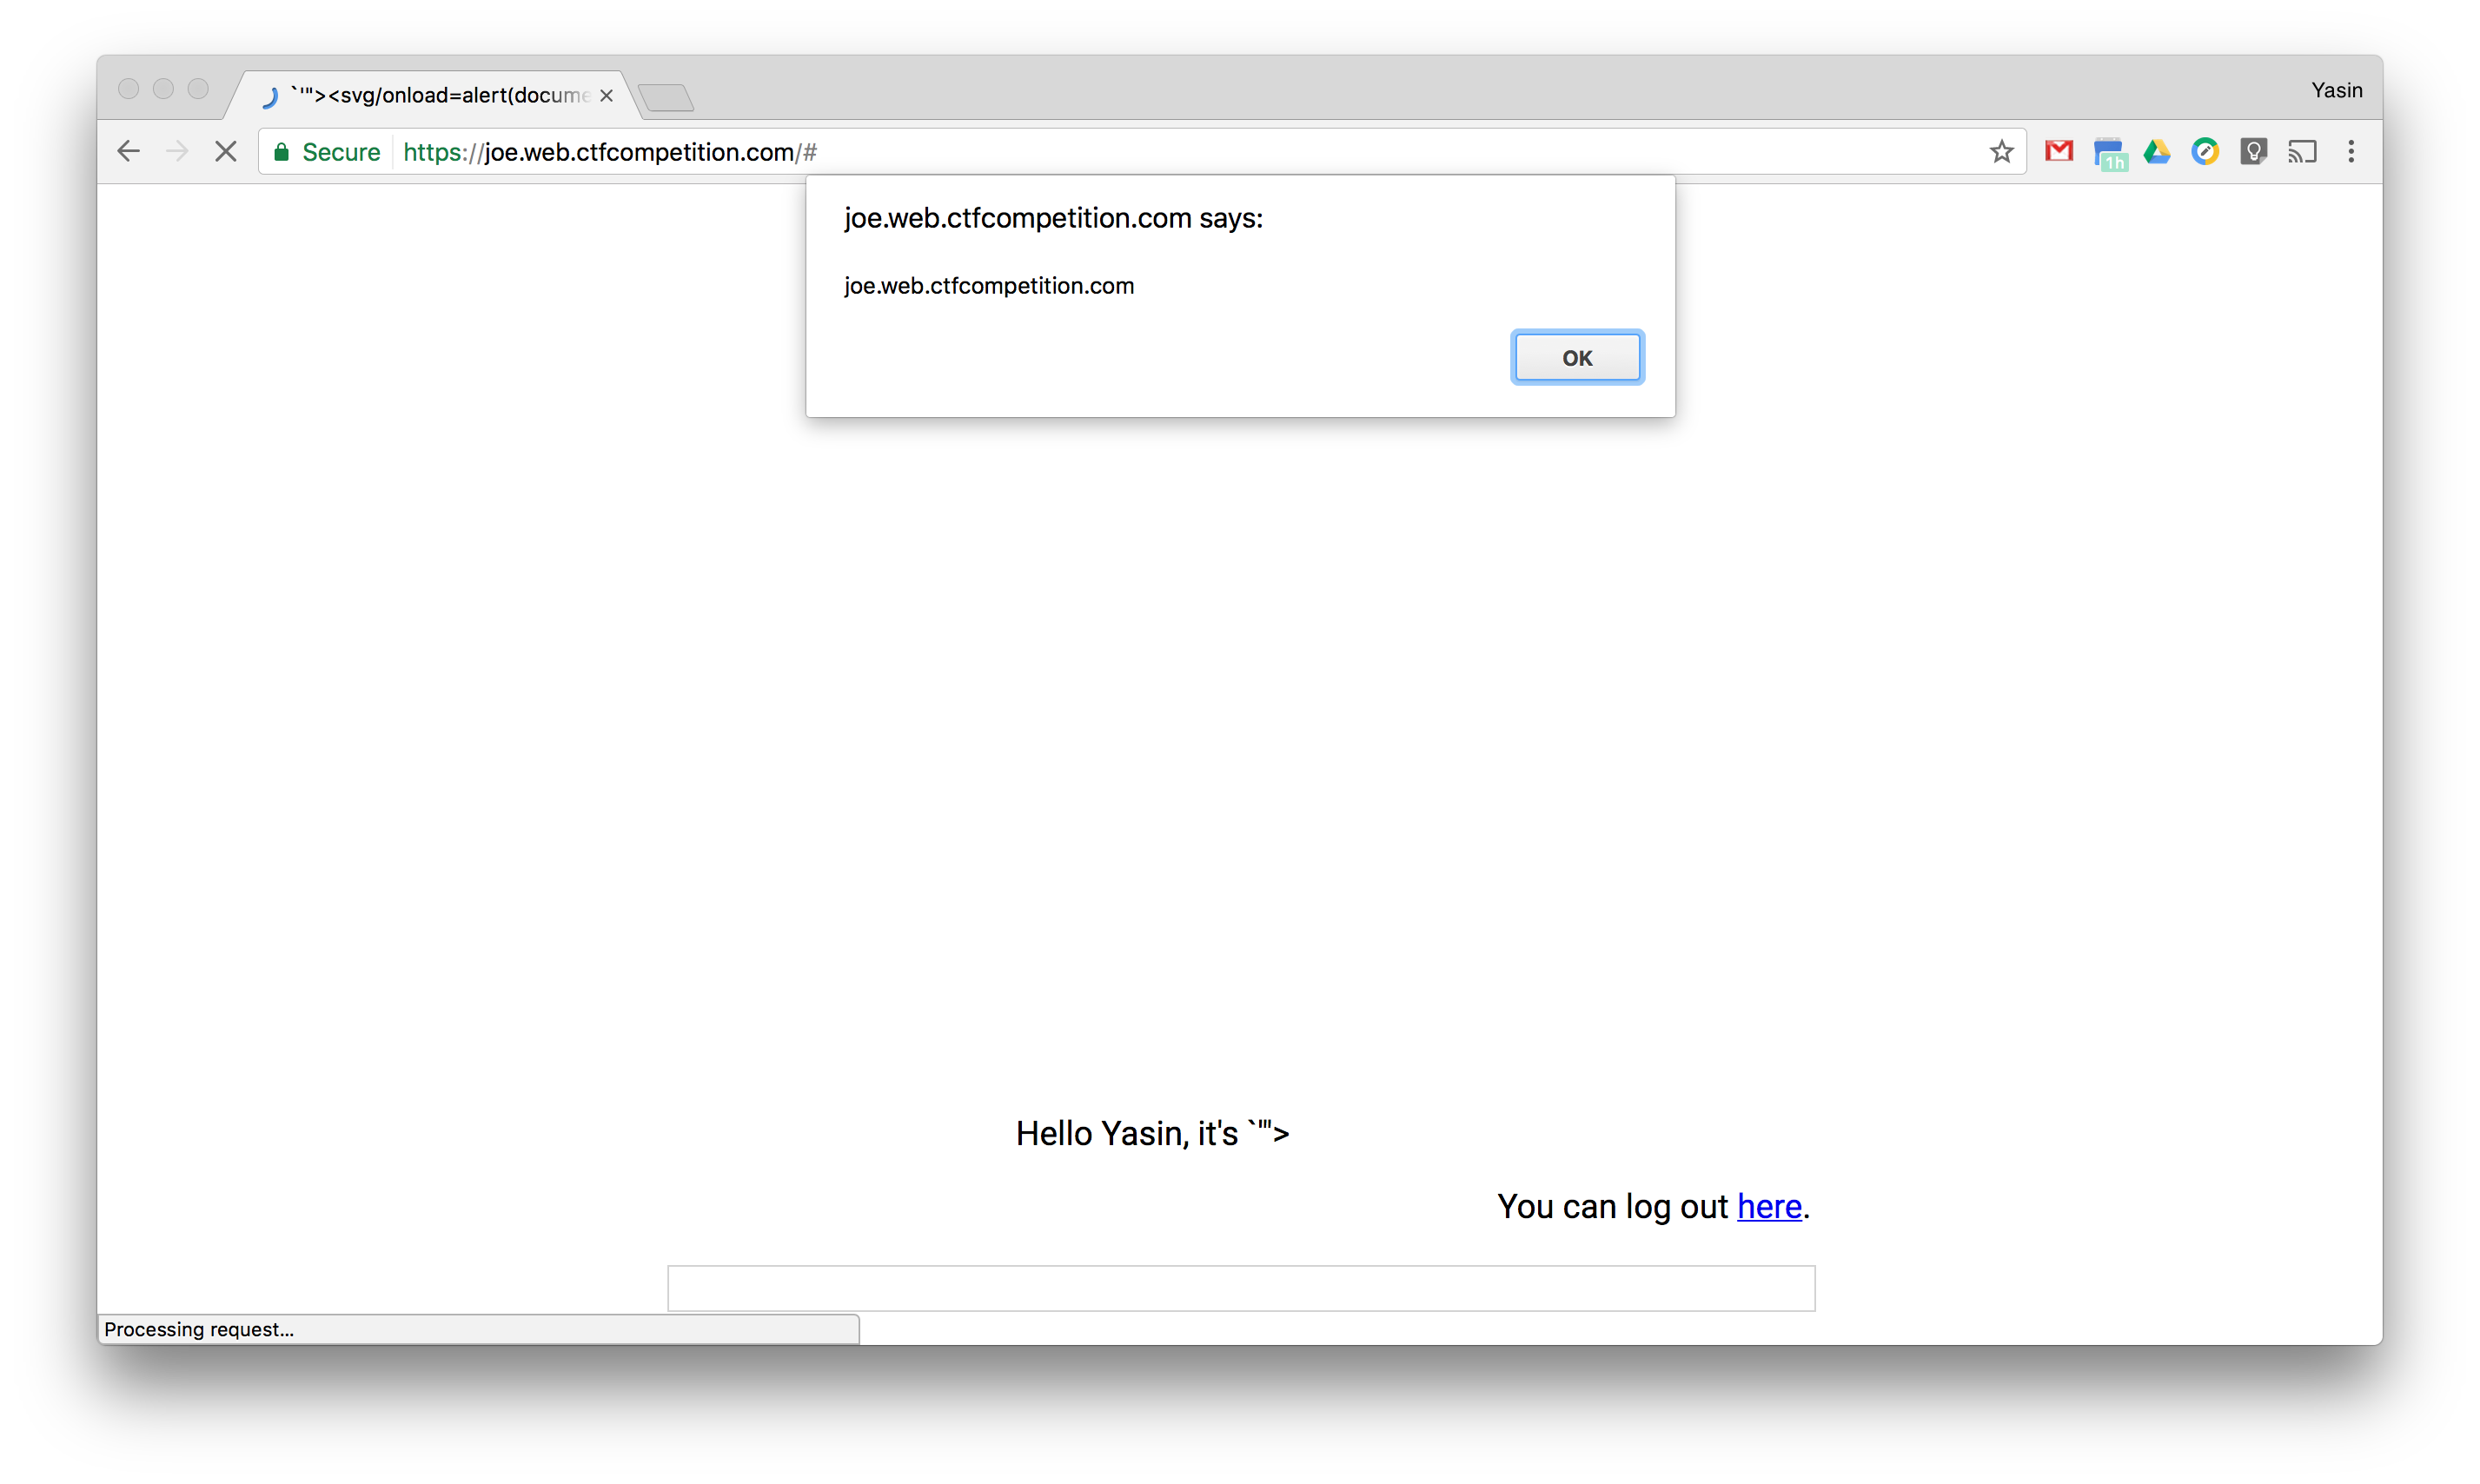 Self-XSS showing Joe site domain